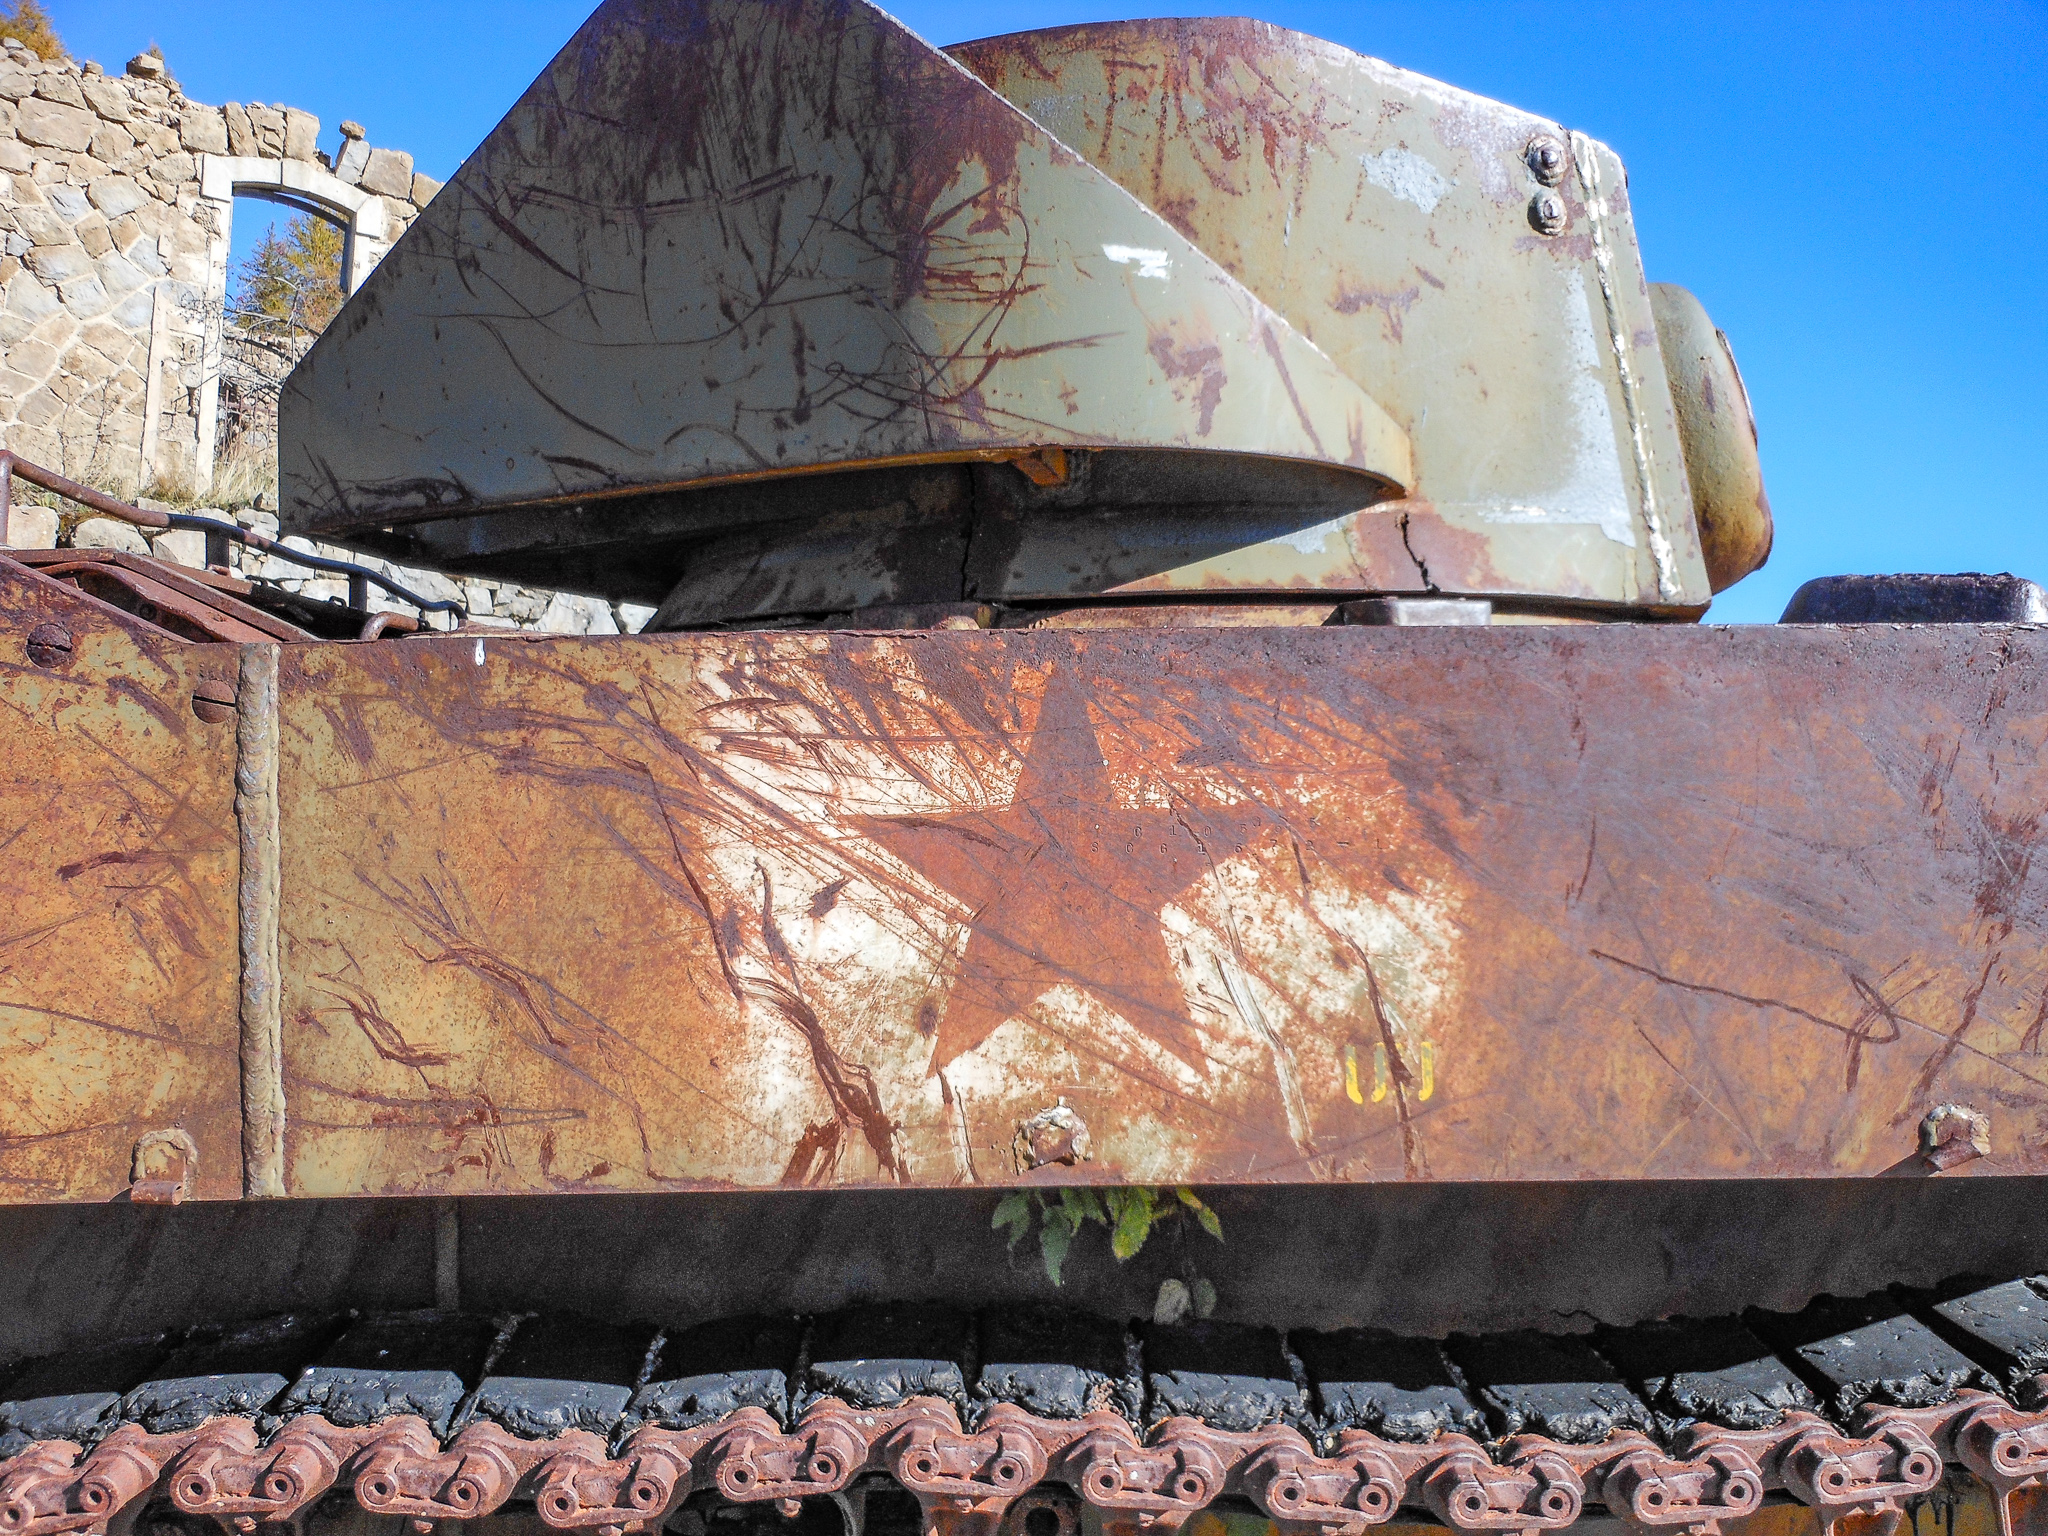 A Stewart tank at the Massif de l'Authion.